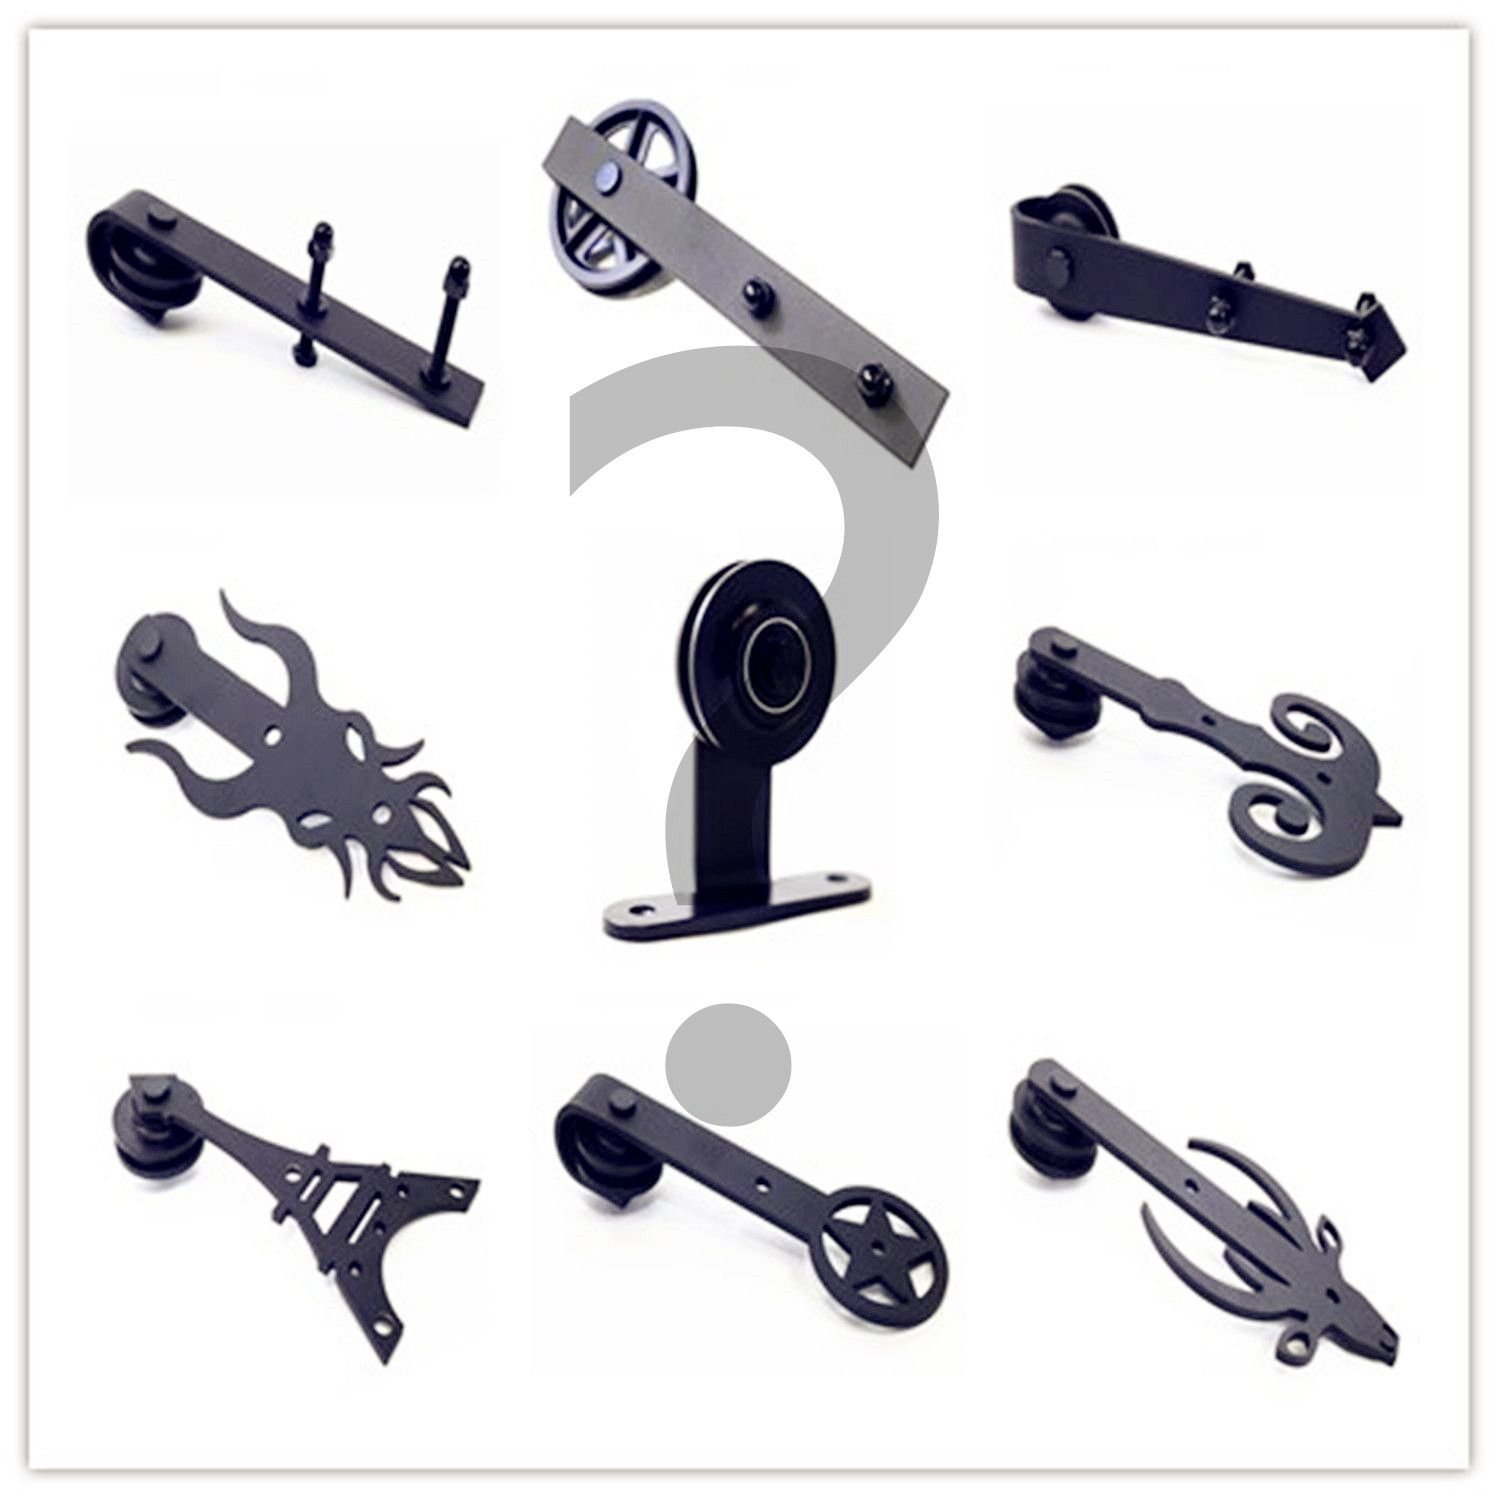 HOMACER Additional Steel Hanger Set (2 Hangers, 2 Anti-Jump Pads and 1 Floor Guide)